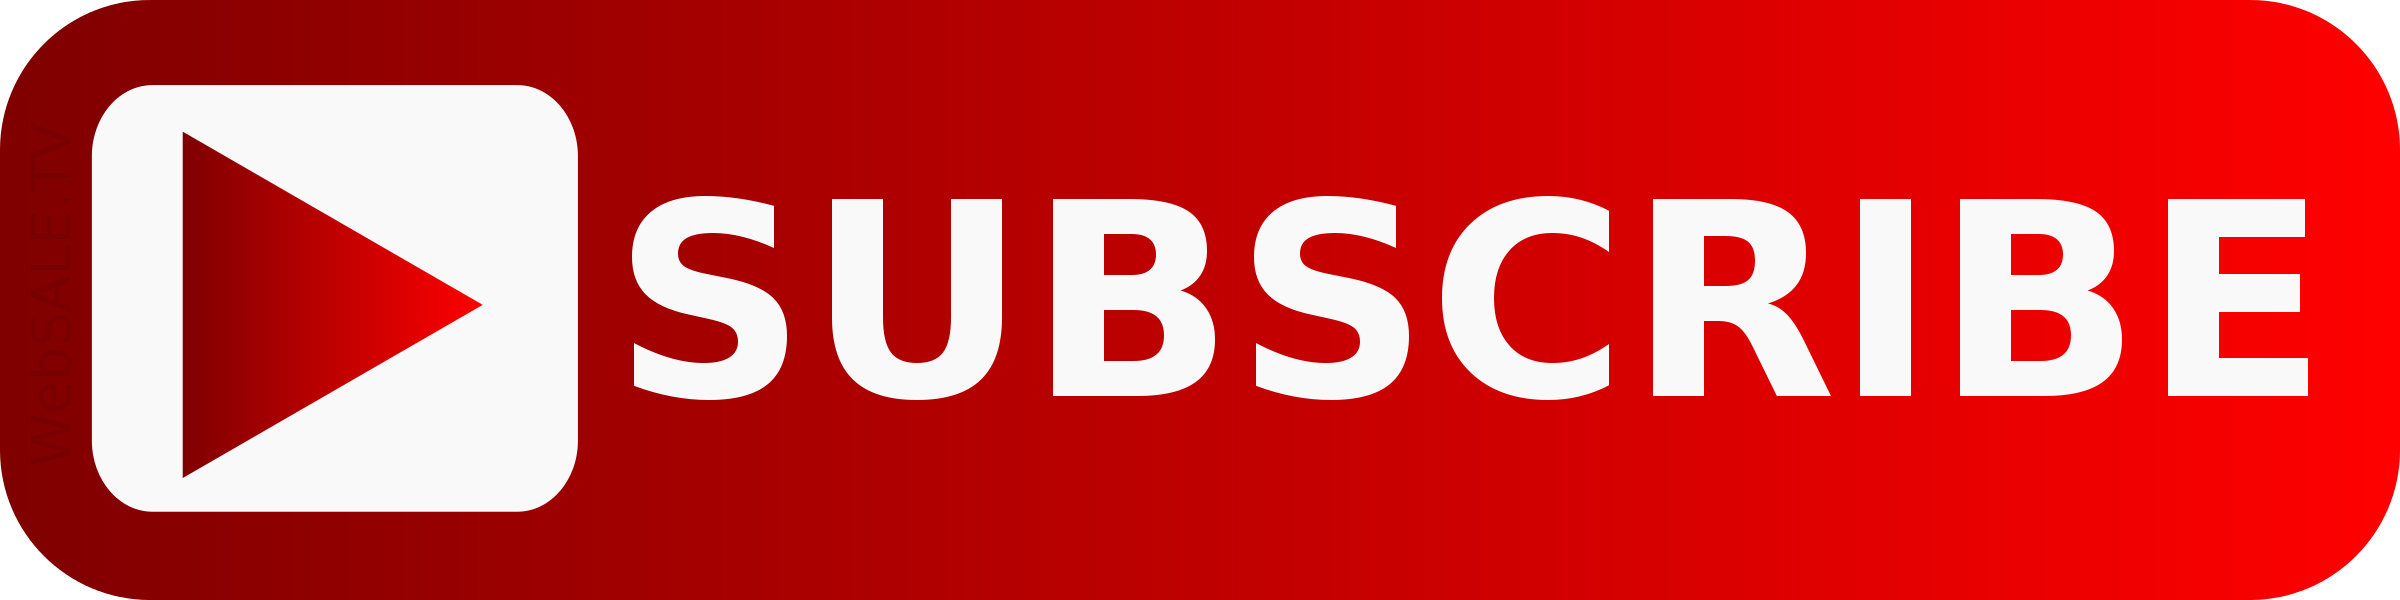 Youtube Subscribe Red Png image #39353